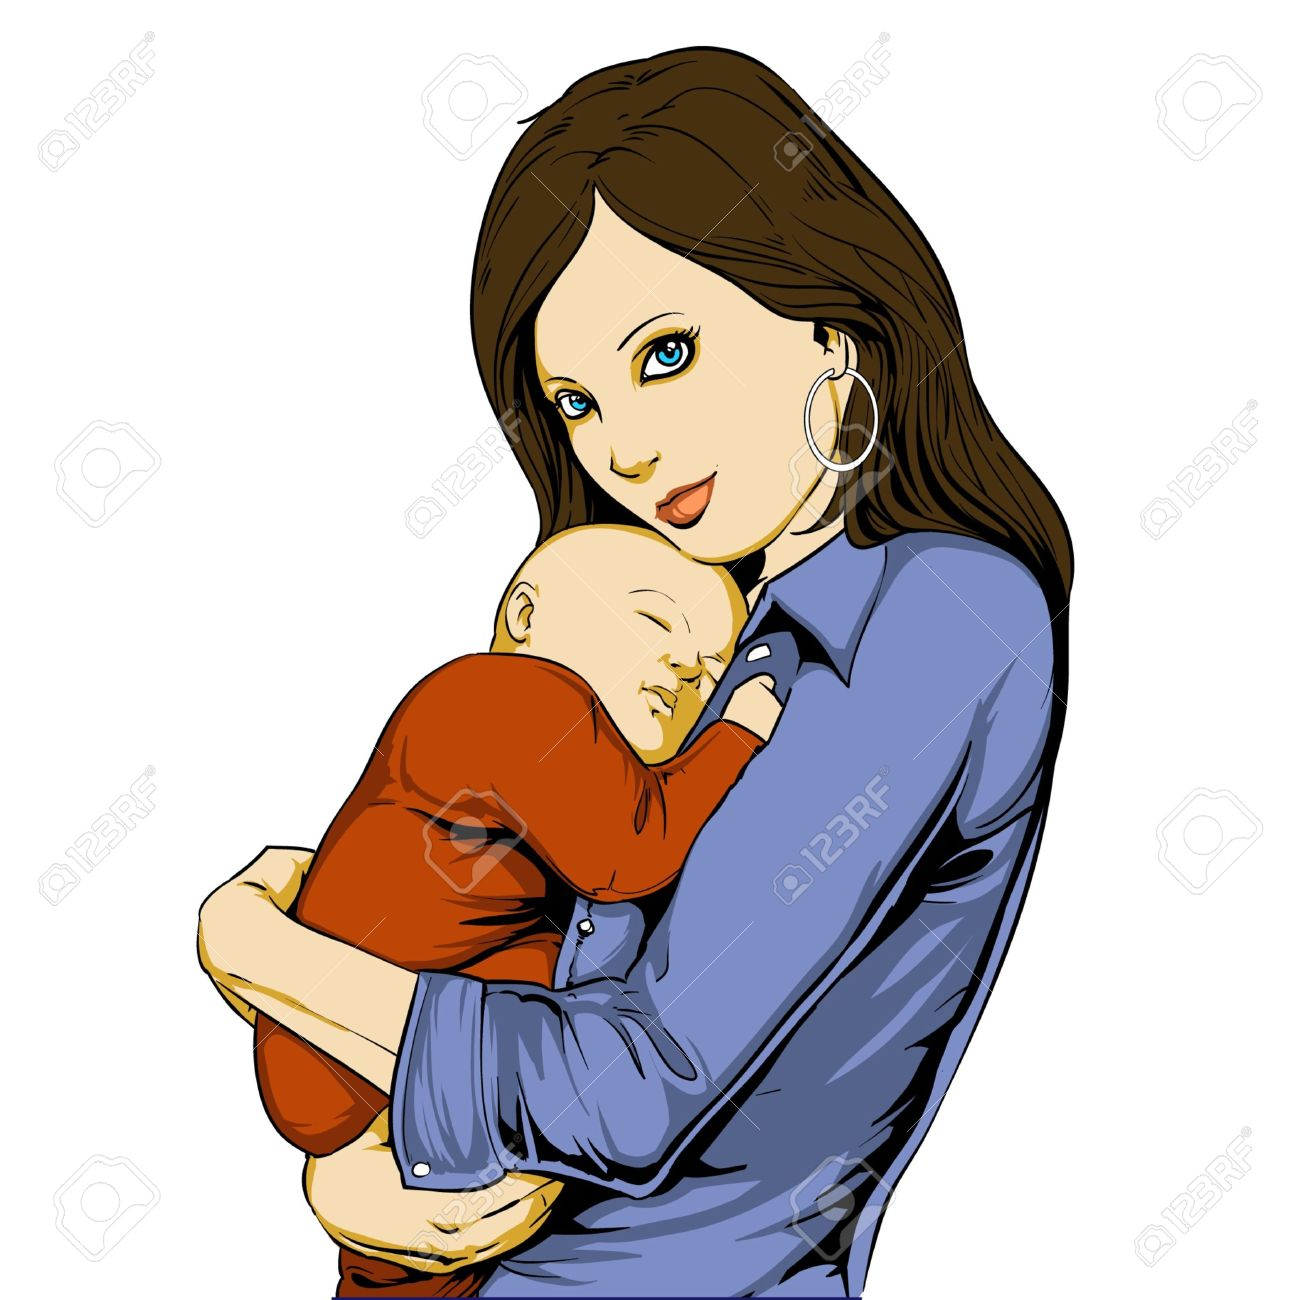 Mother carrying child clipart.